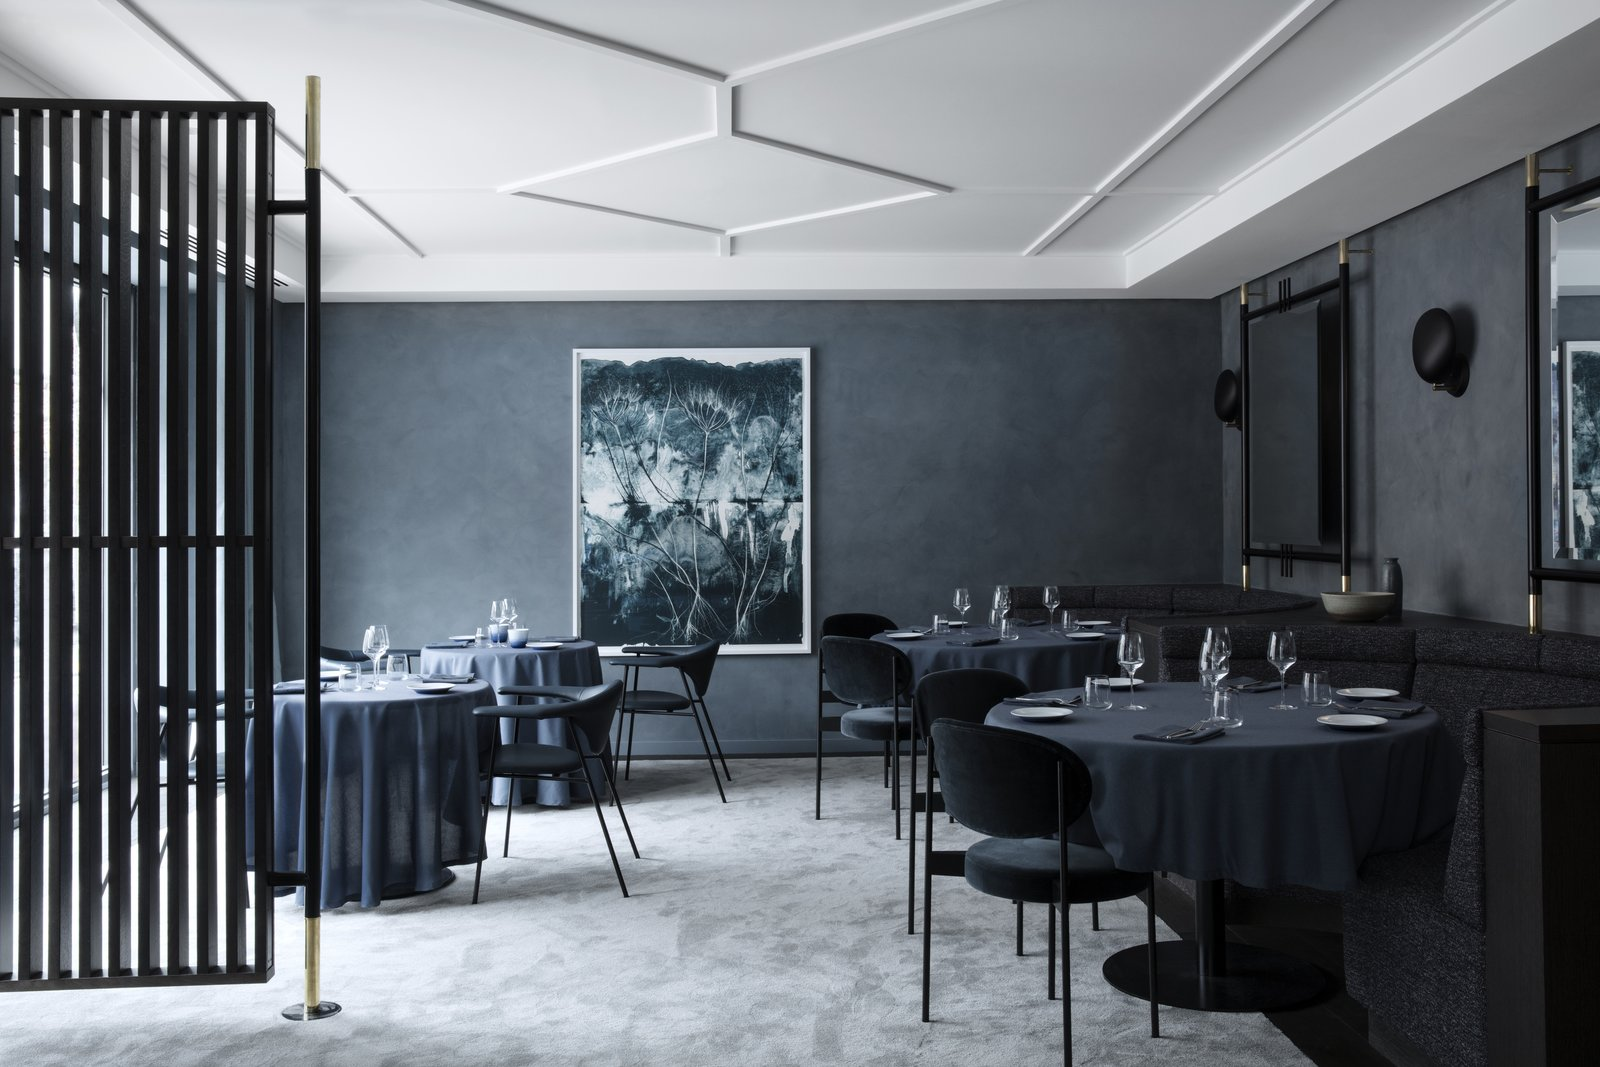 Unlike Flora Danica, Copenhague is draped in darker, more intense colors and textures. The walls are lined with GUBI's Cobra Lamps while the large-scale mirrors come from the same design concept as their TS Collection.